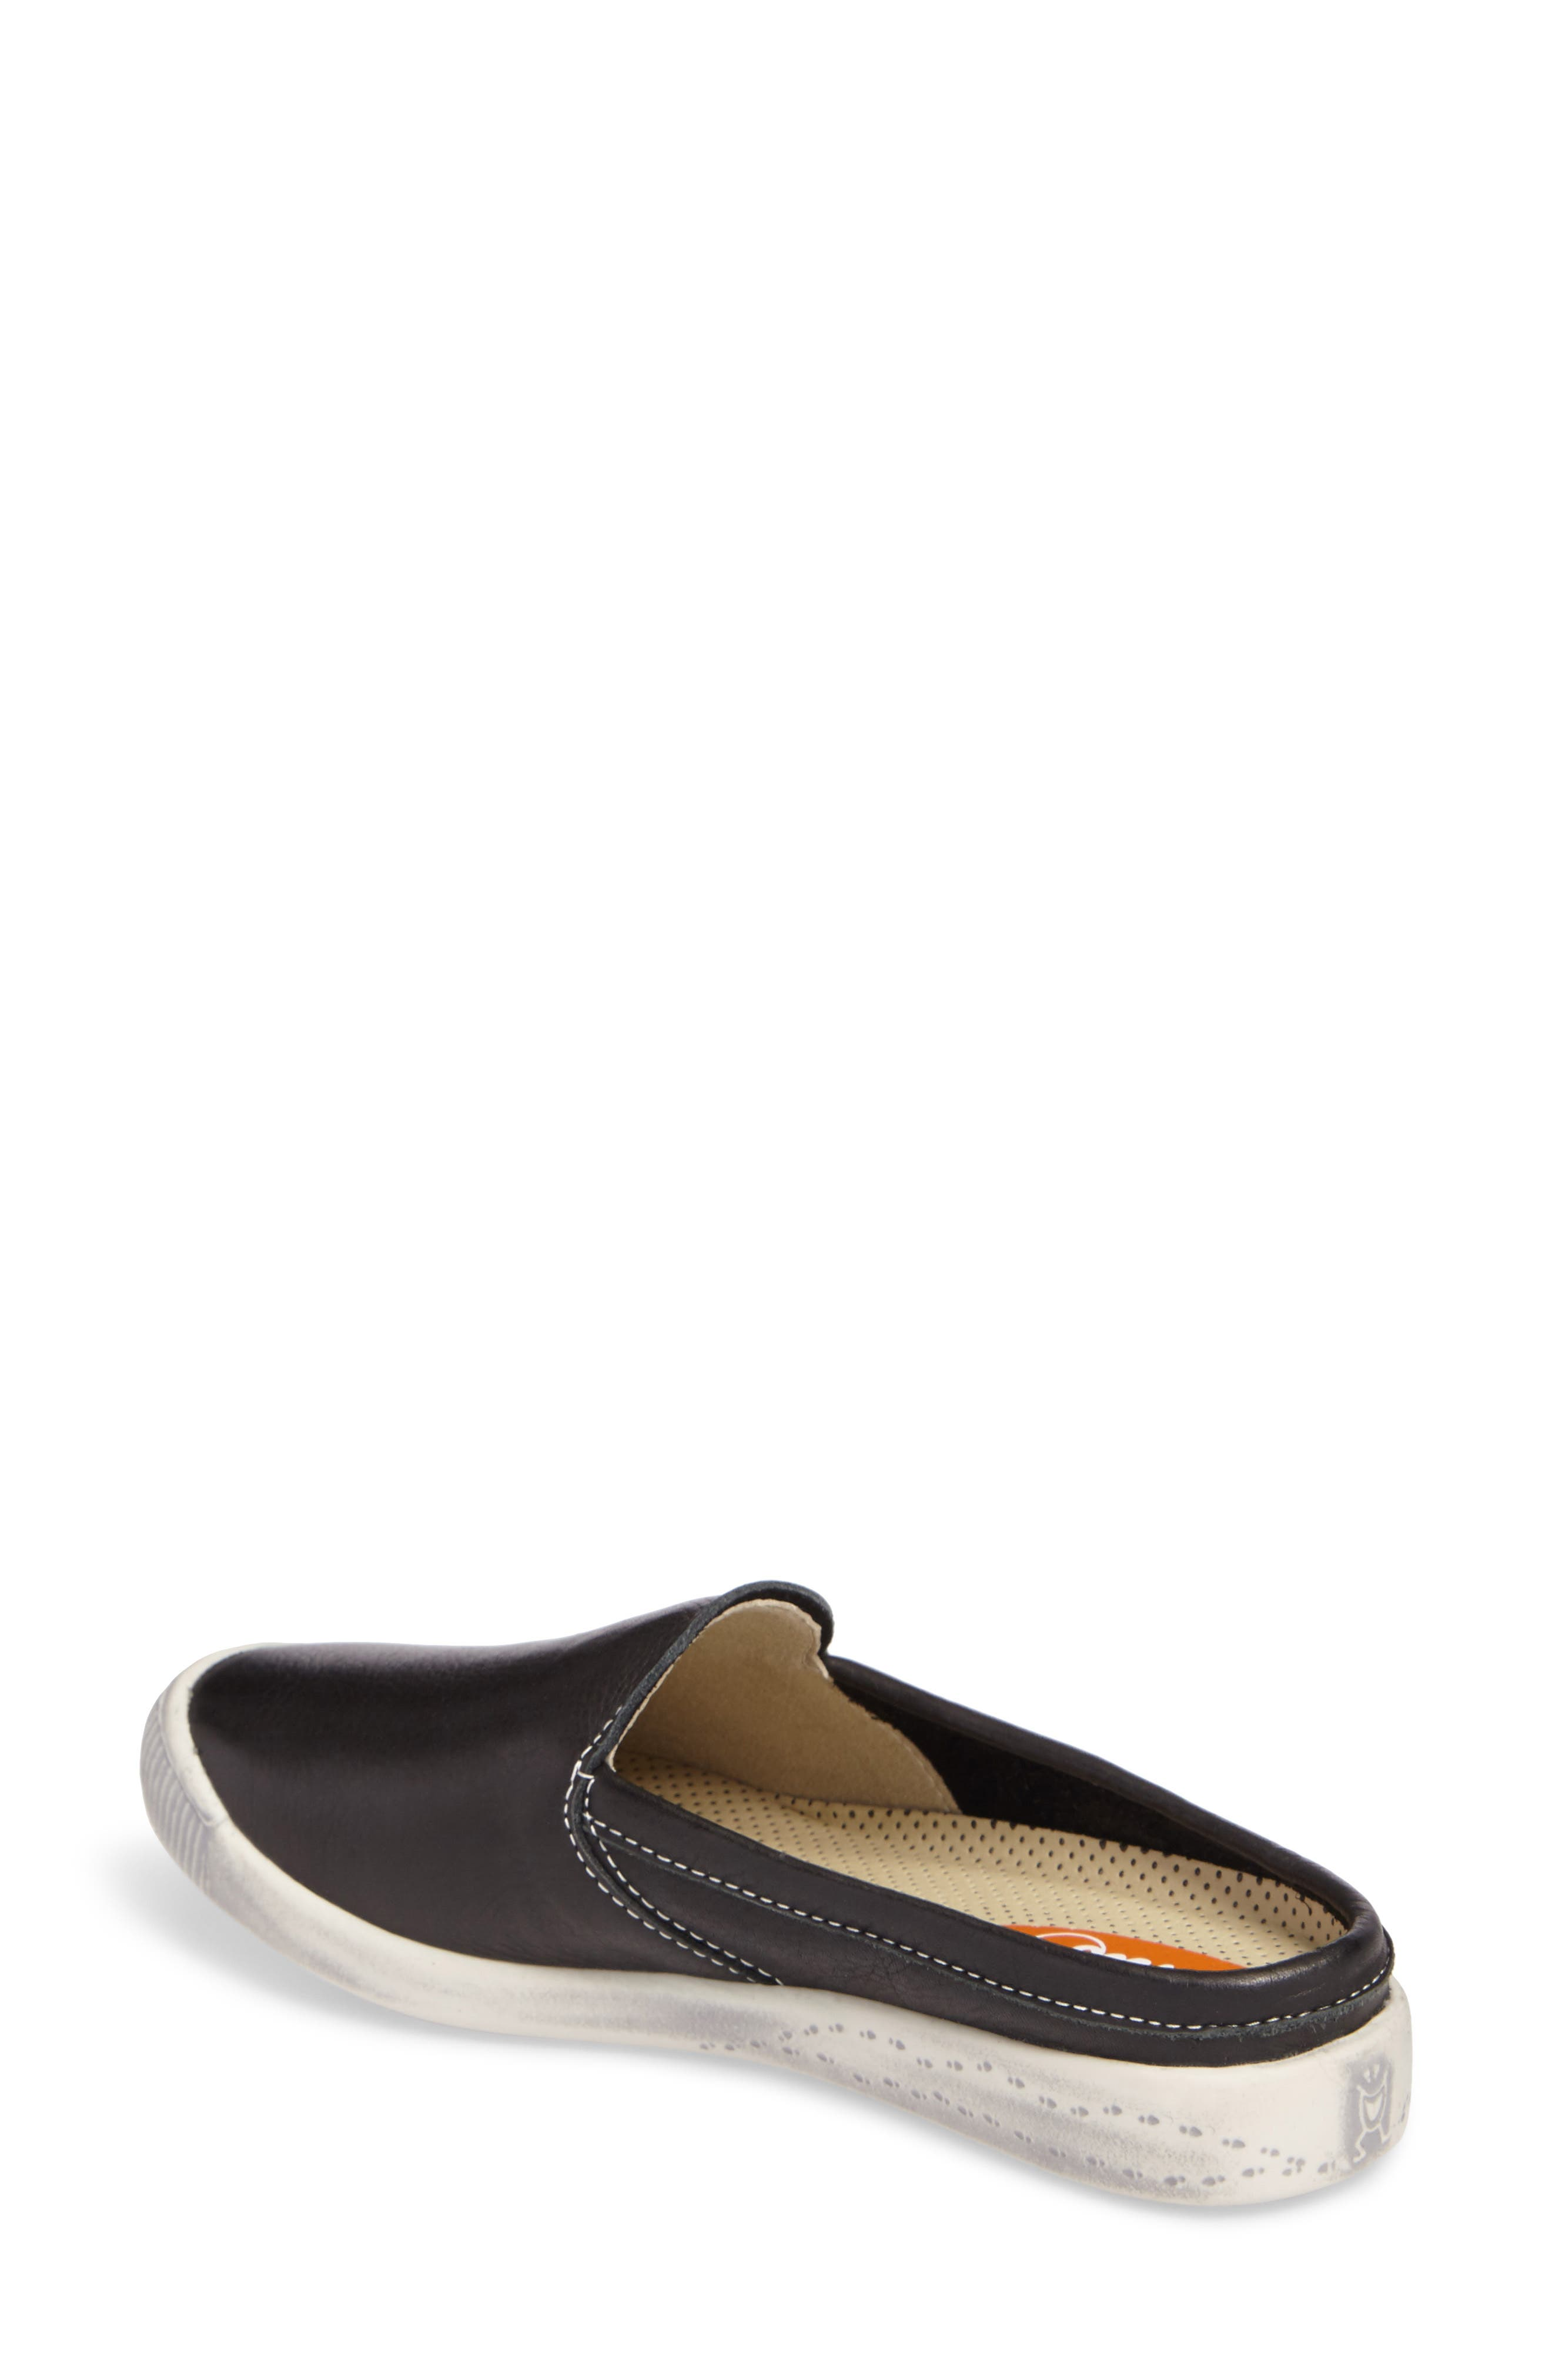 Alternate Image 2  - Softinos by Fly London Imo Sneaker Mule (Women)